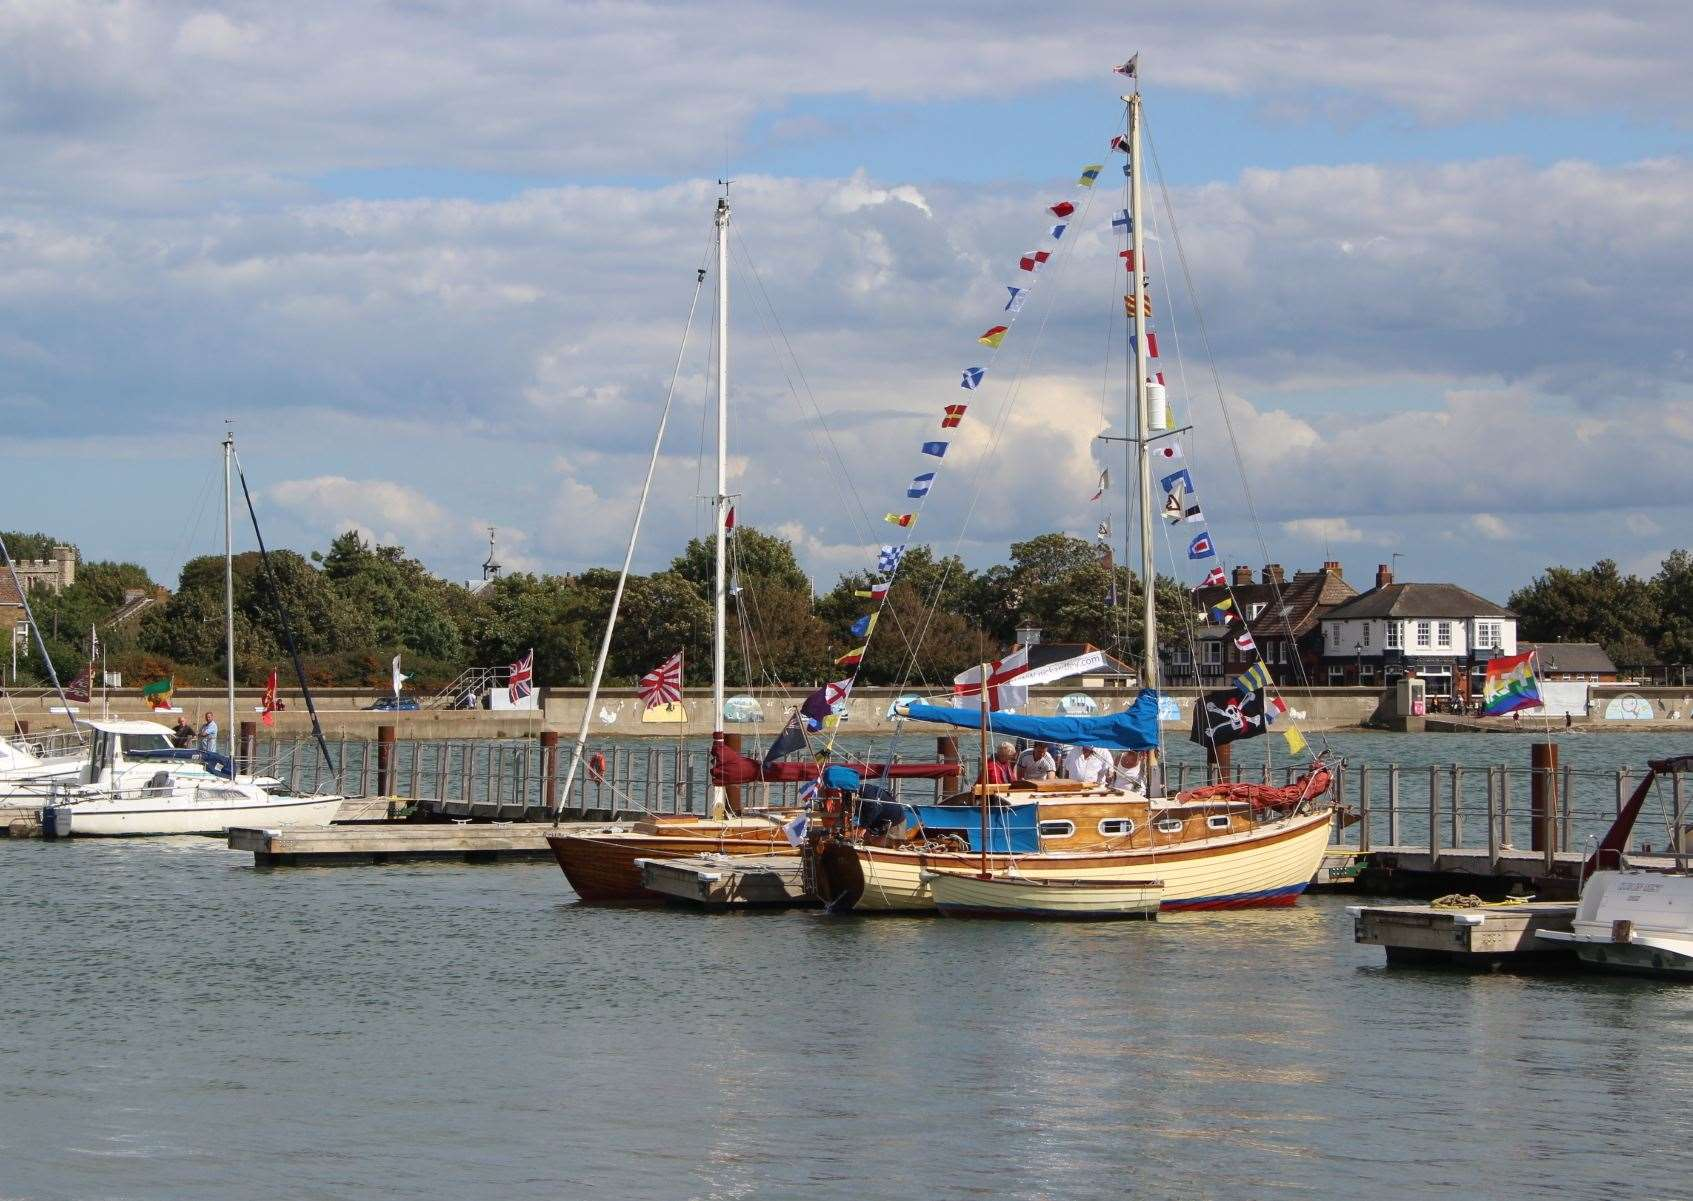 Classic Boat day at Queenborough